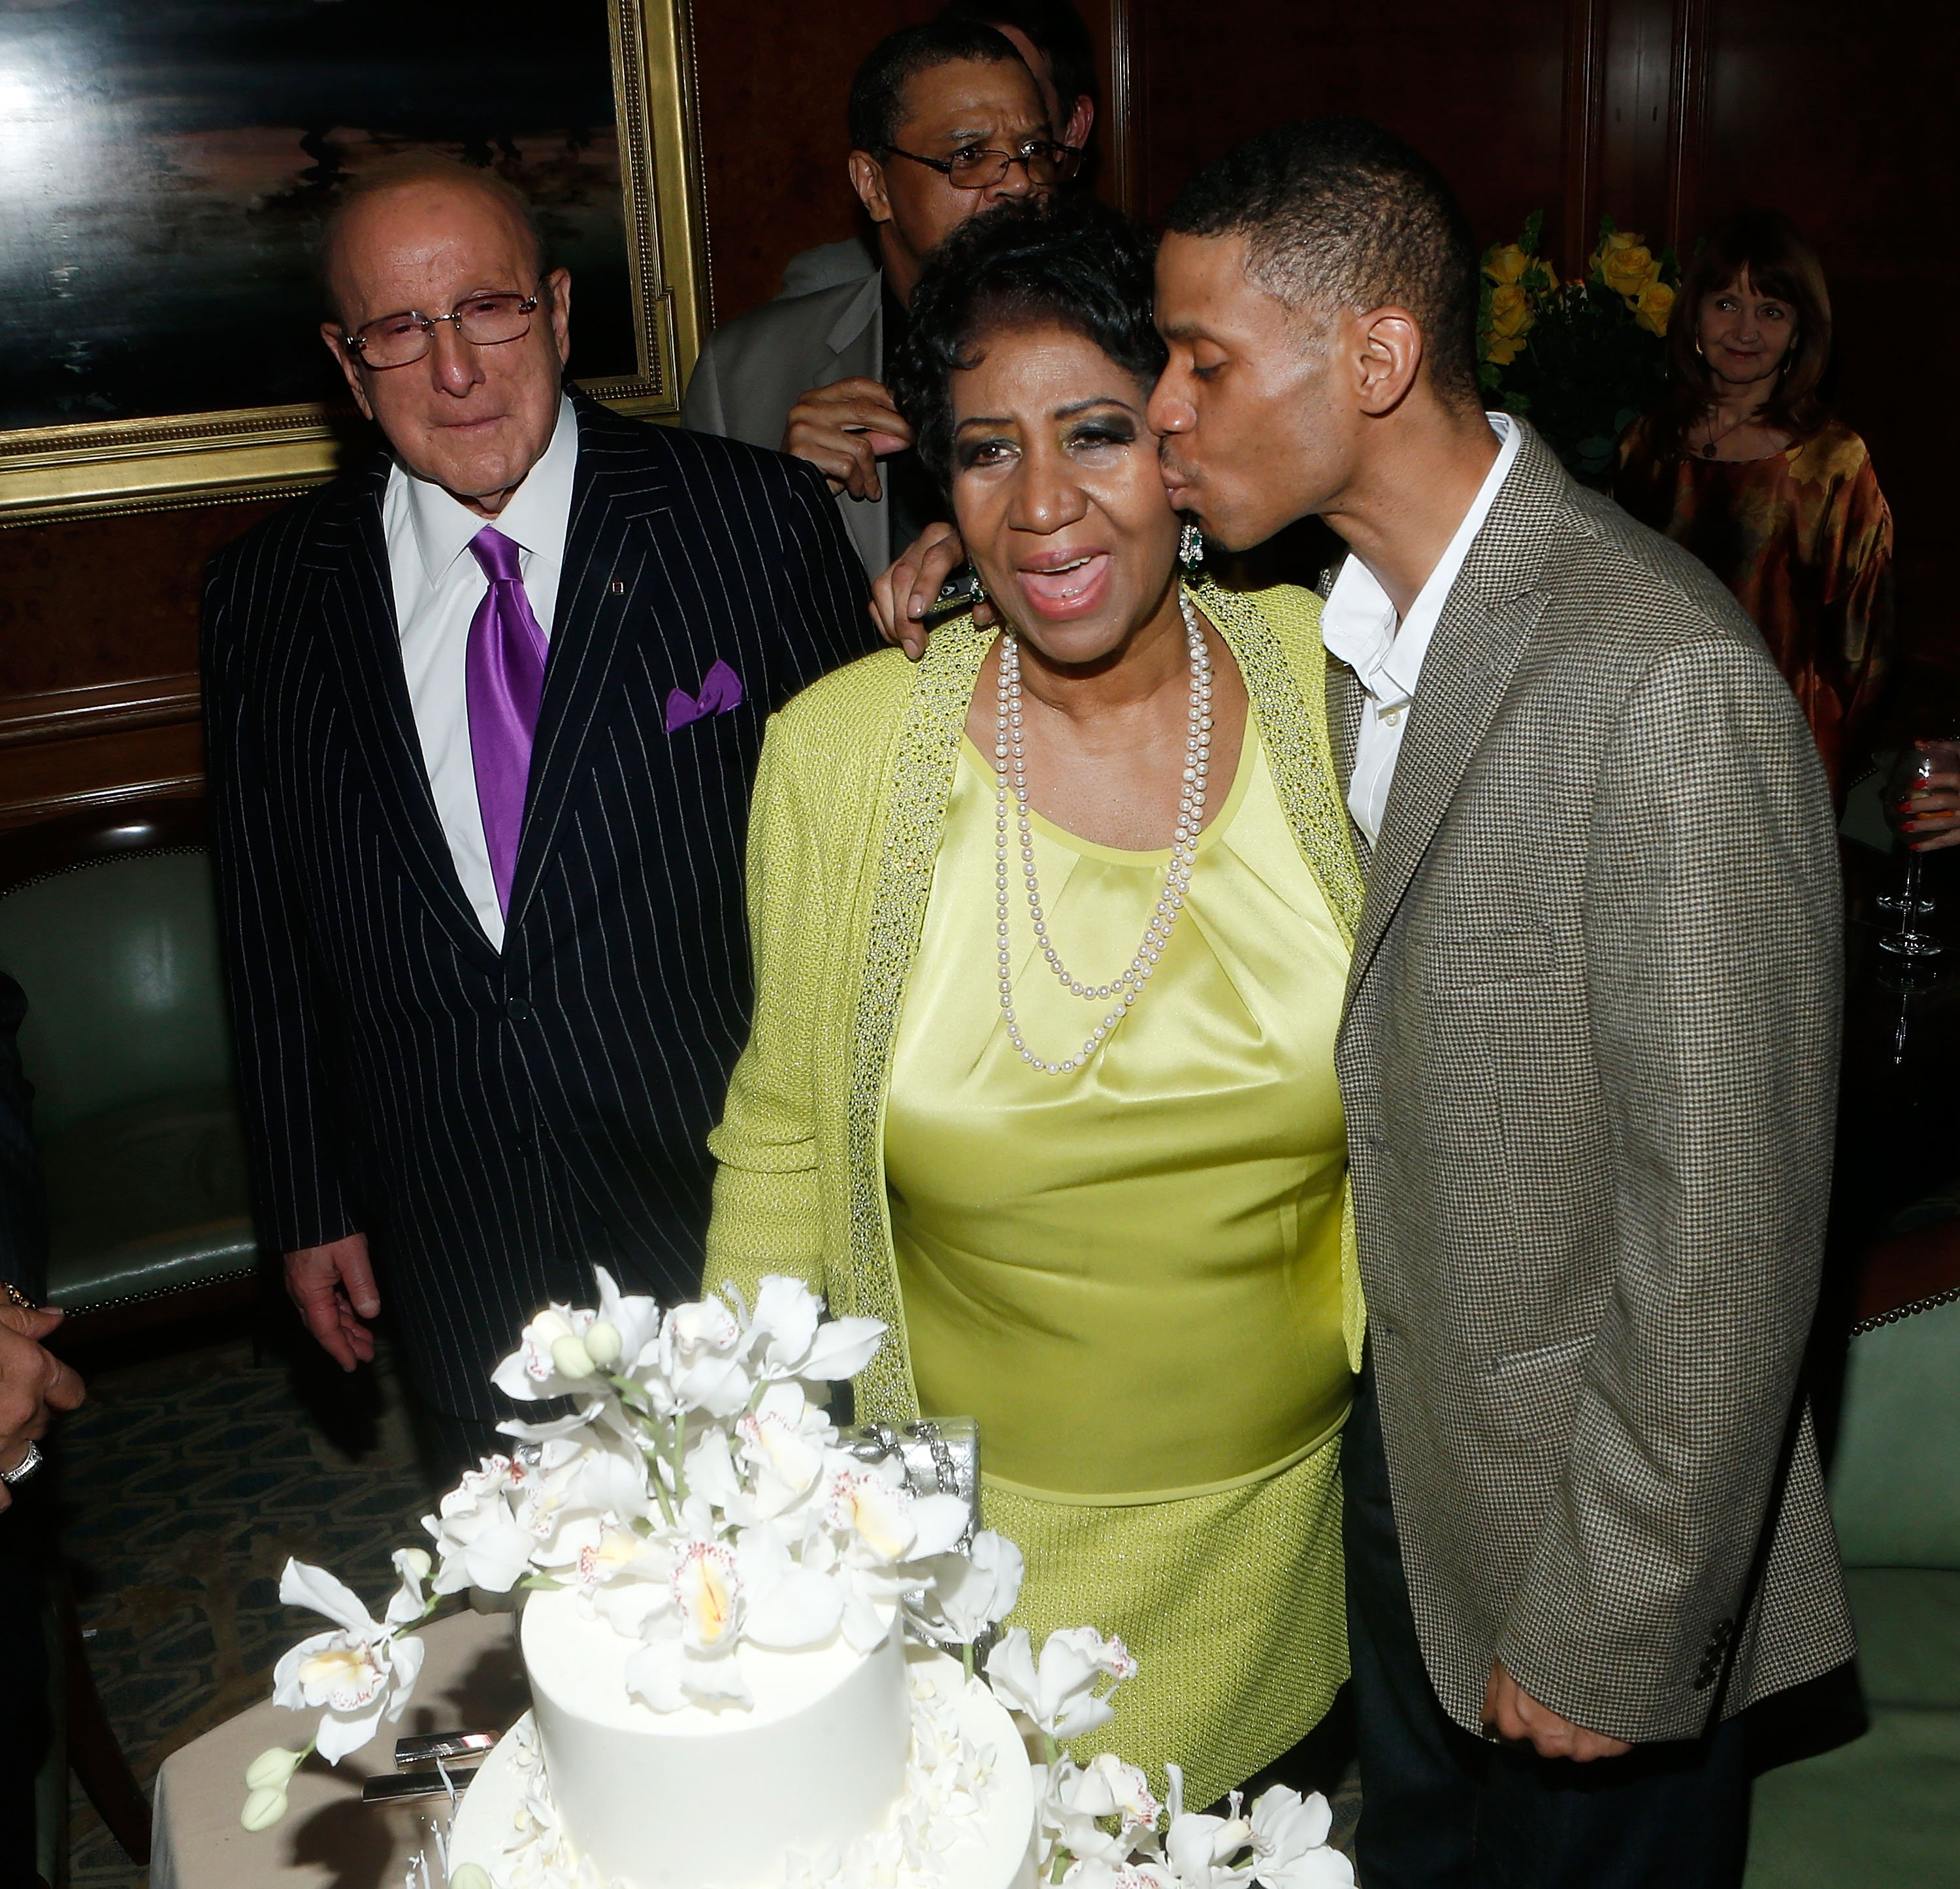 Aretha Franklin & son Kecalf Cunningham at her 72nd Birthday Celebration in New York City on March 22, 2014. |Photo: Getty Images